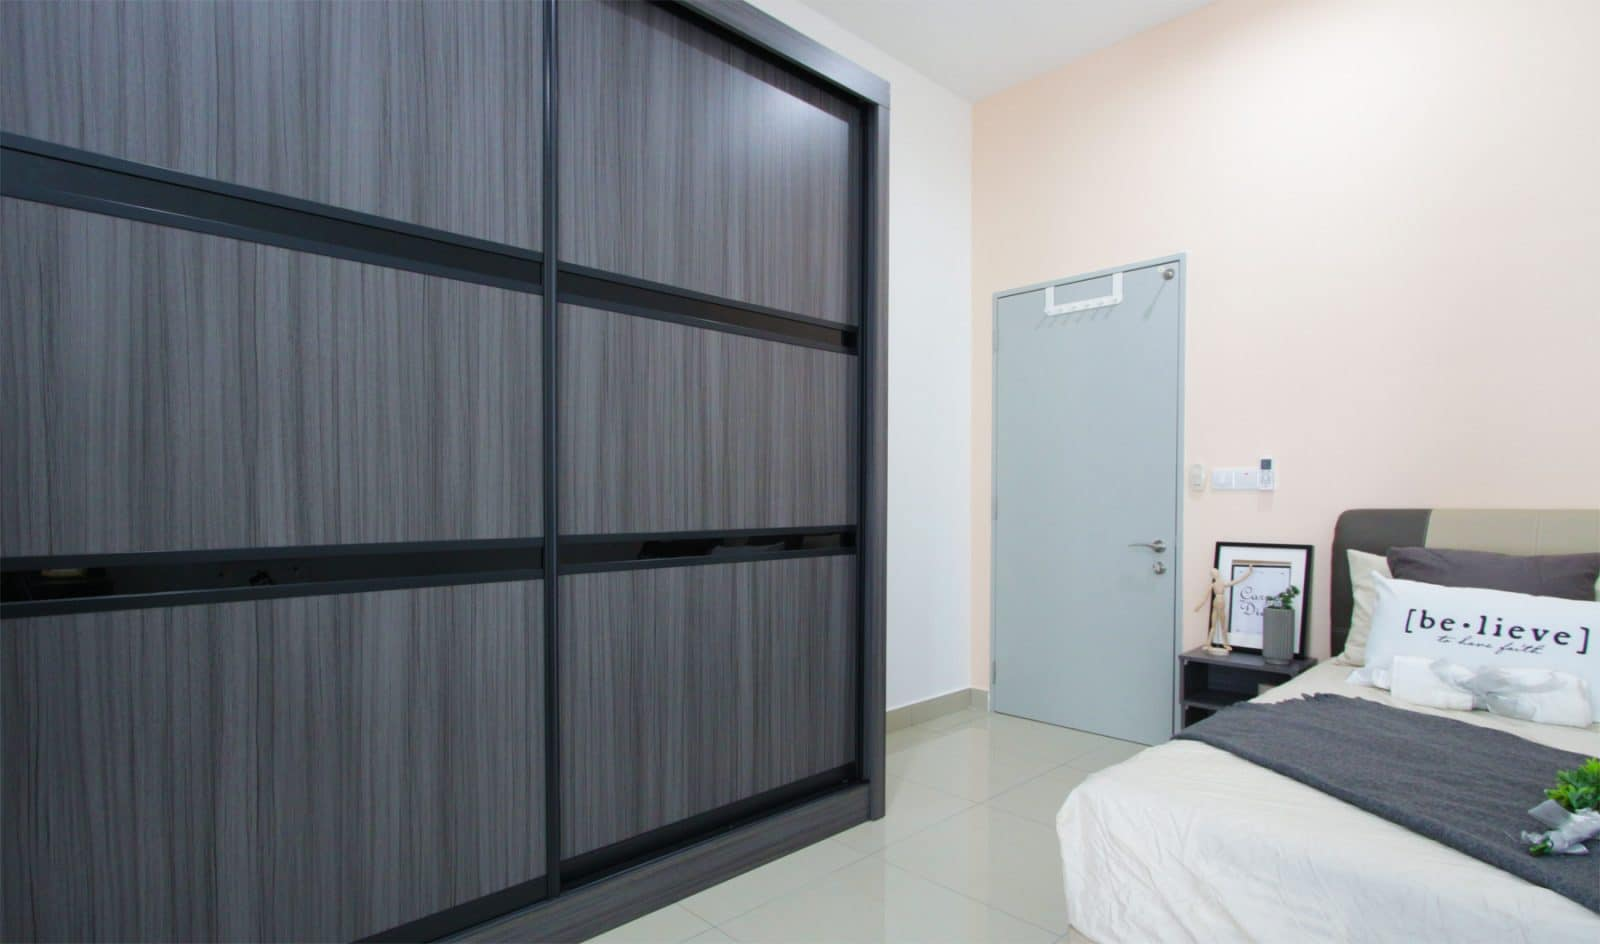 wardrobe design in of the bedrooms of this house in southville city